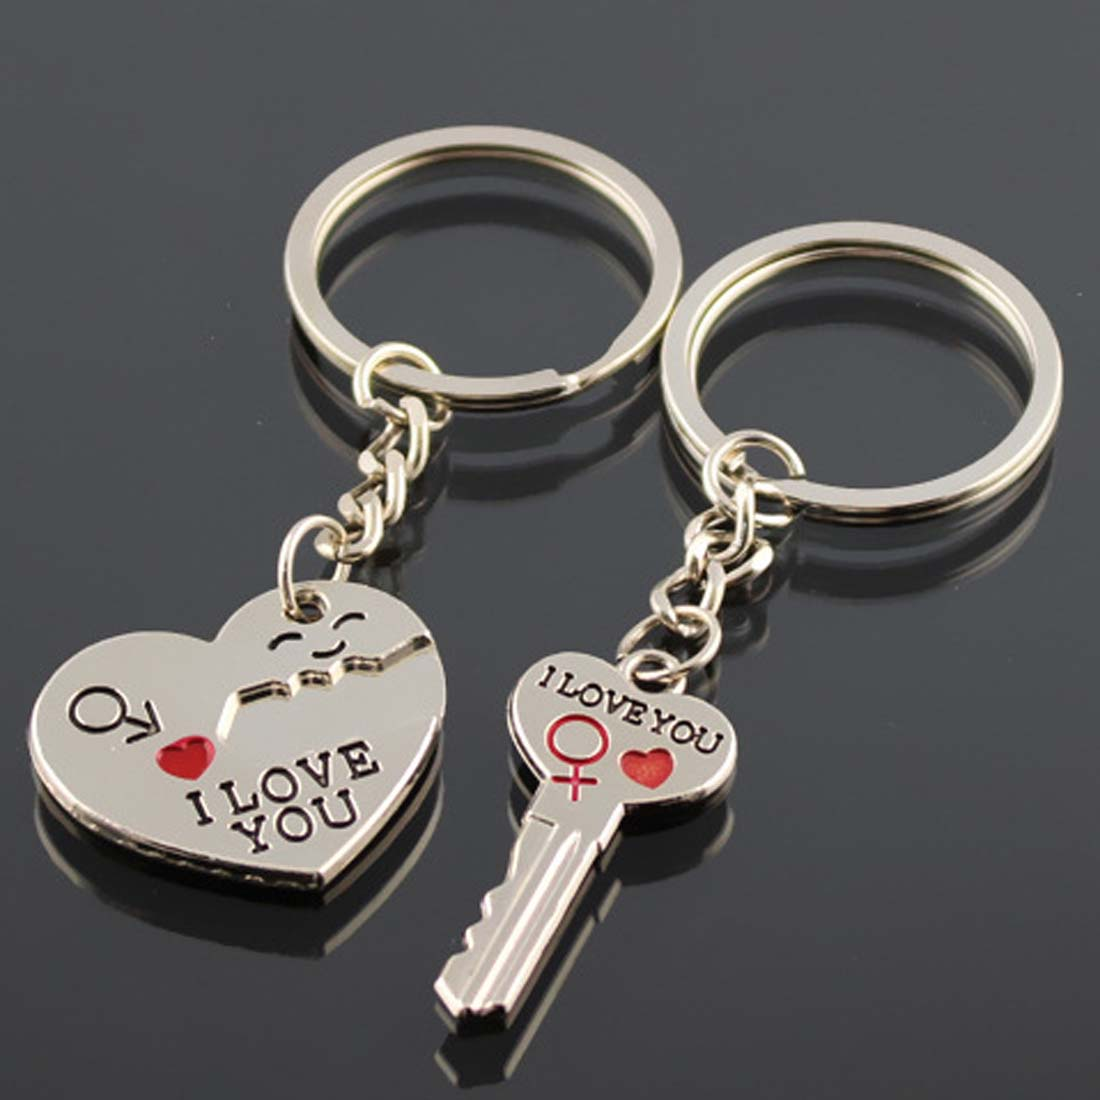 1 Pair Key Rings Key Chains Heart Keychain Man Women Gift Keyring Wedding  Favors Gifts Wedding Souvenirs Wedding Supplies -in Event   Party from Home  ... 39478a0c70